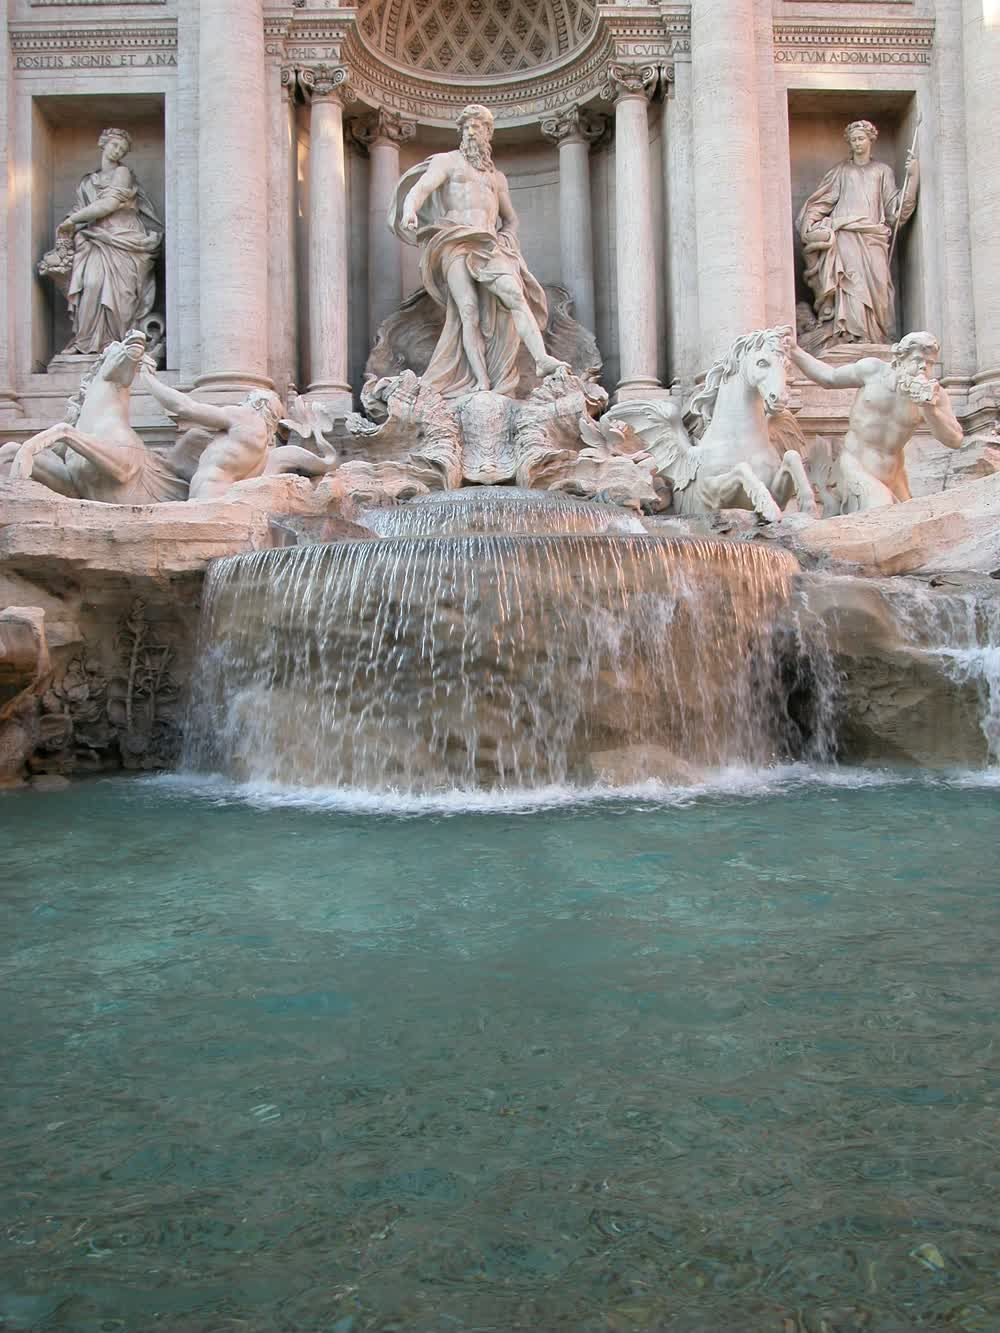 title: Flowing Waters of the Trevi Fountain in Roma